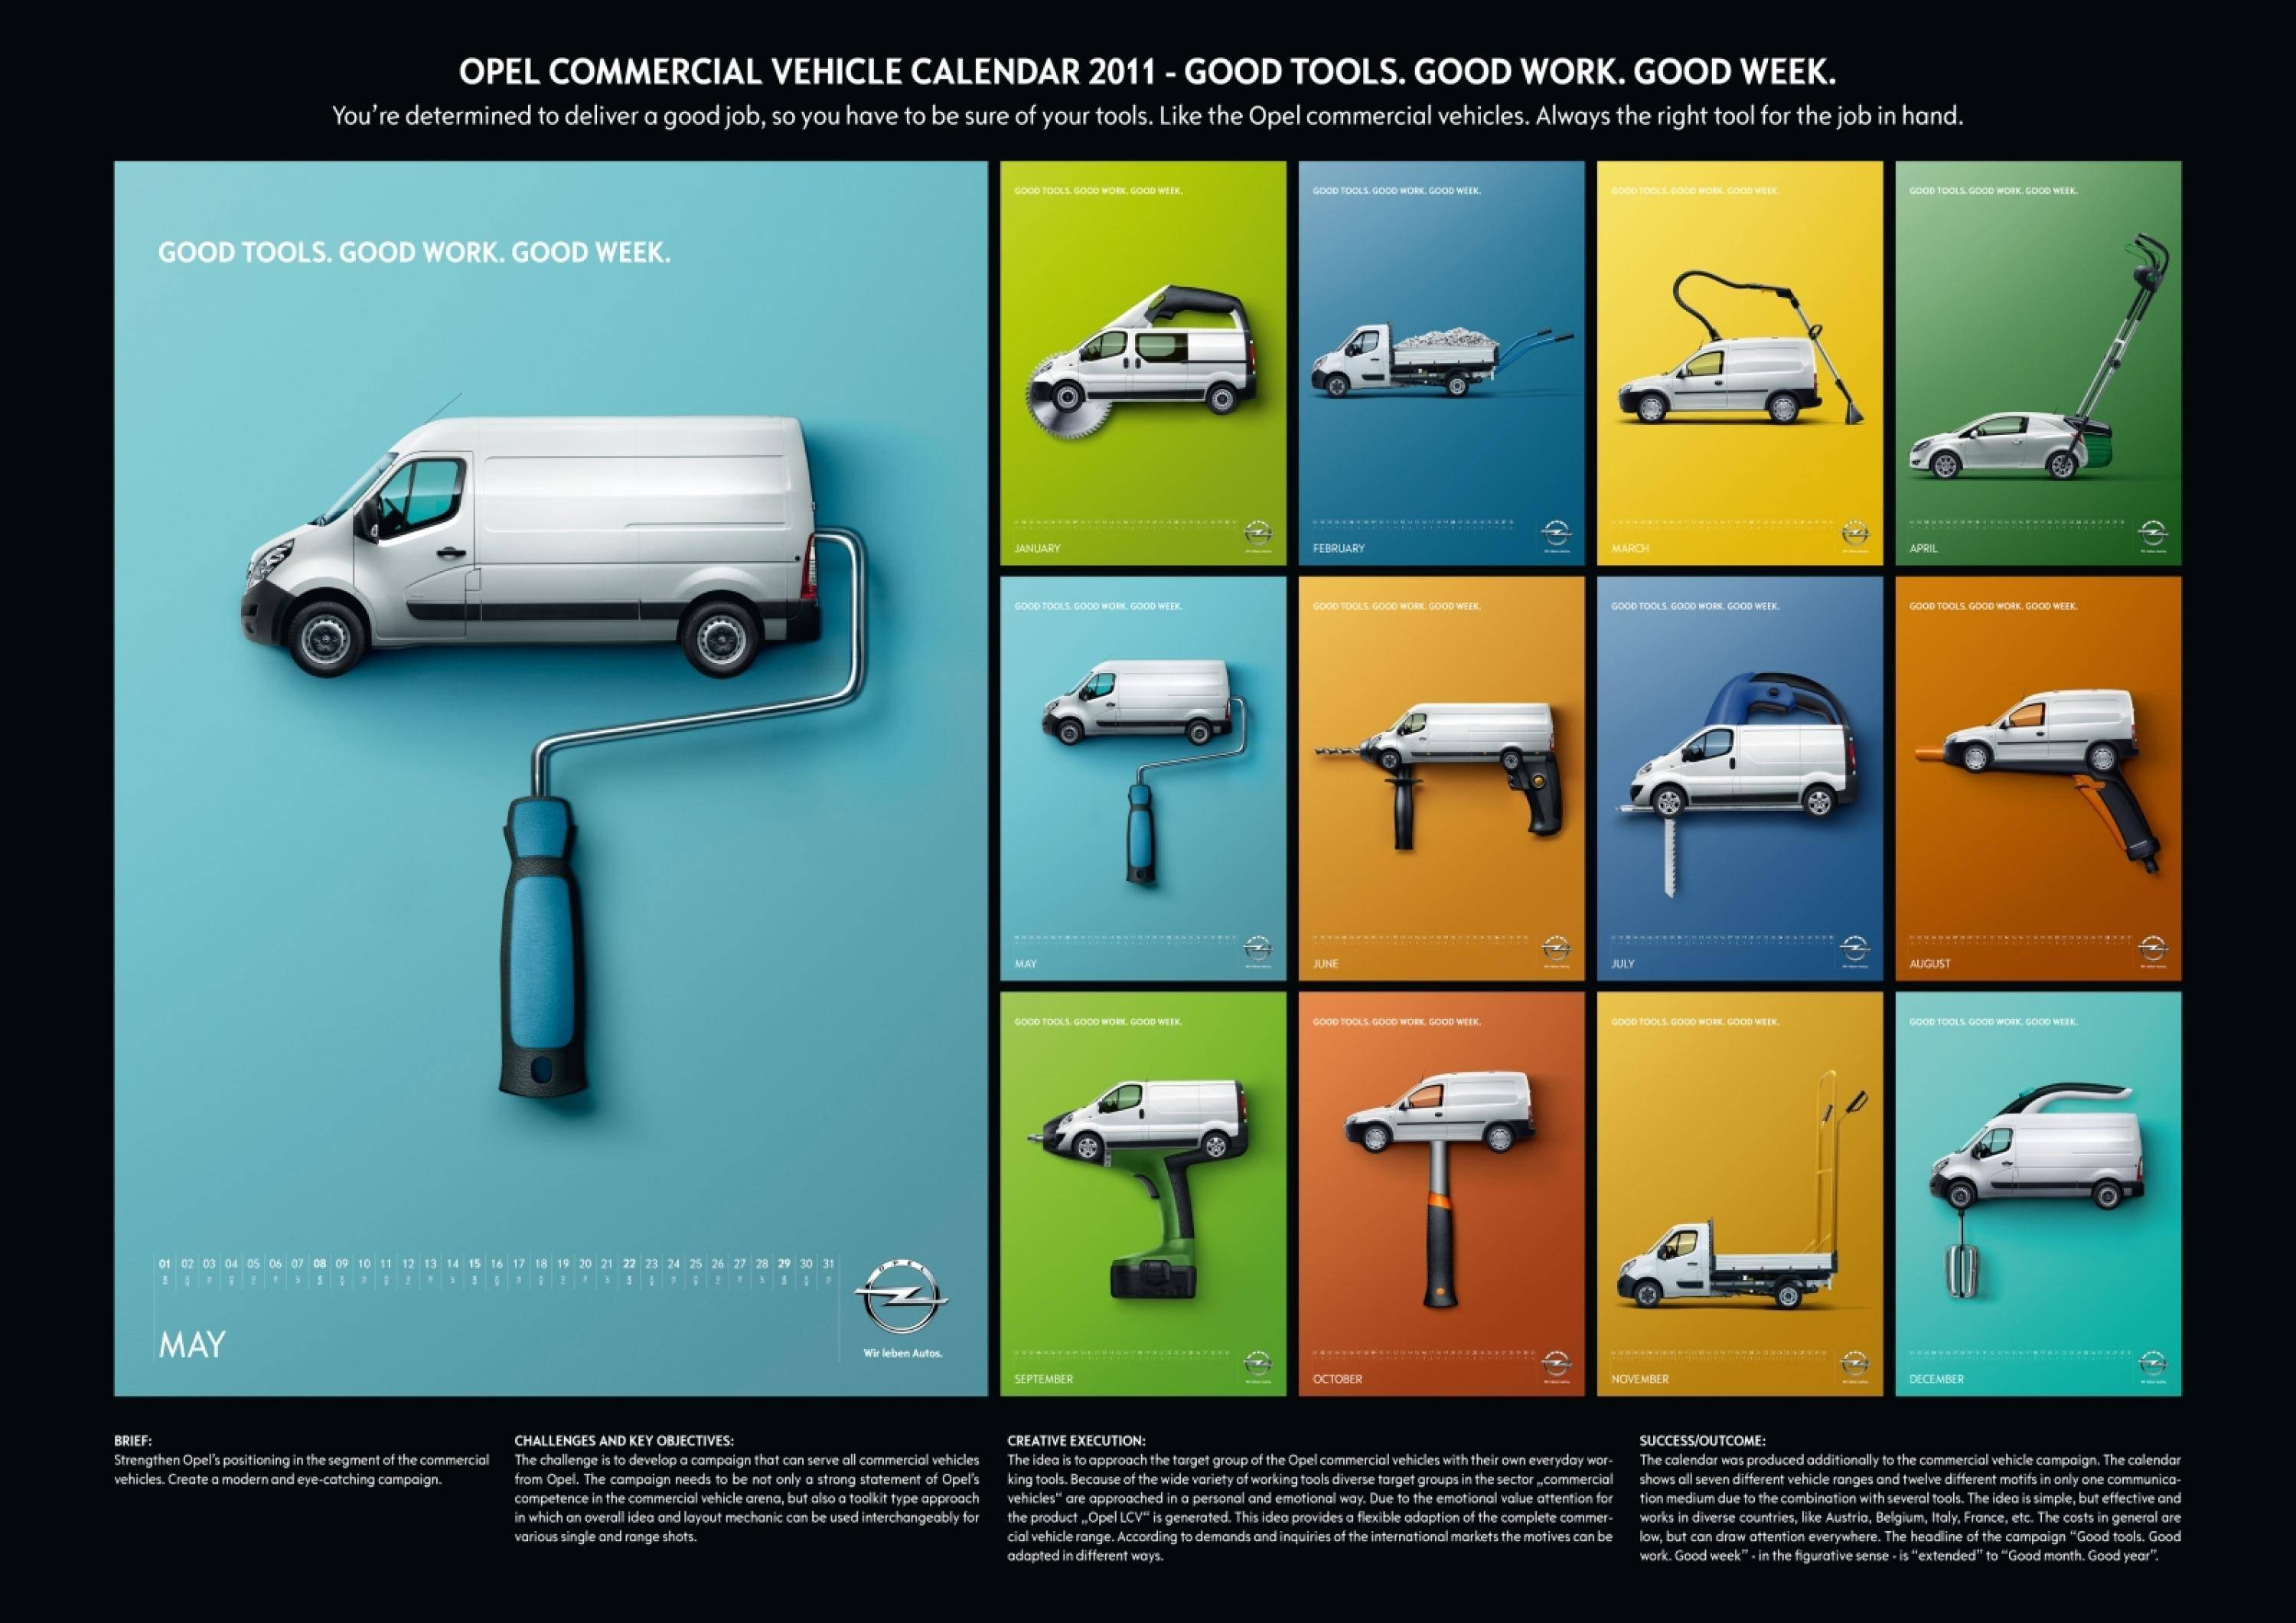 opel-commercial-vehicles-good-tools-good-work-good-week-design-100977-adeevee